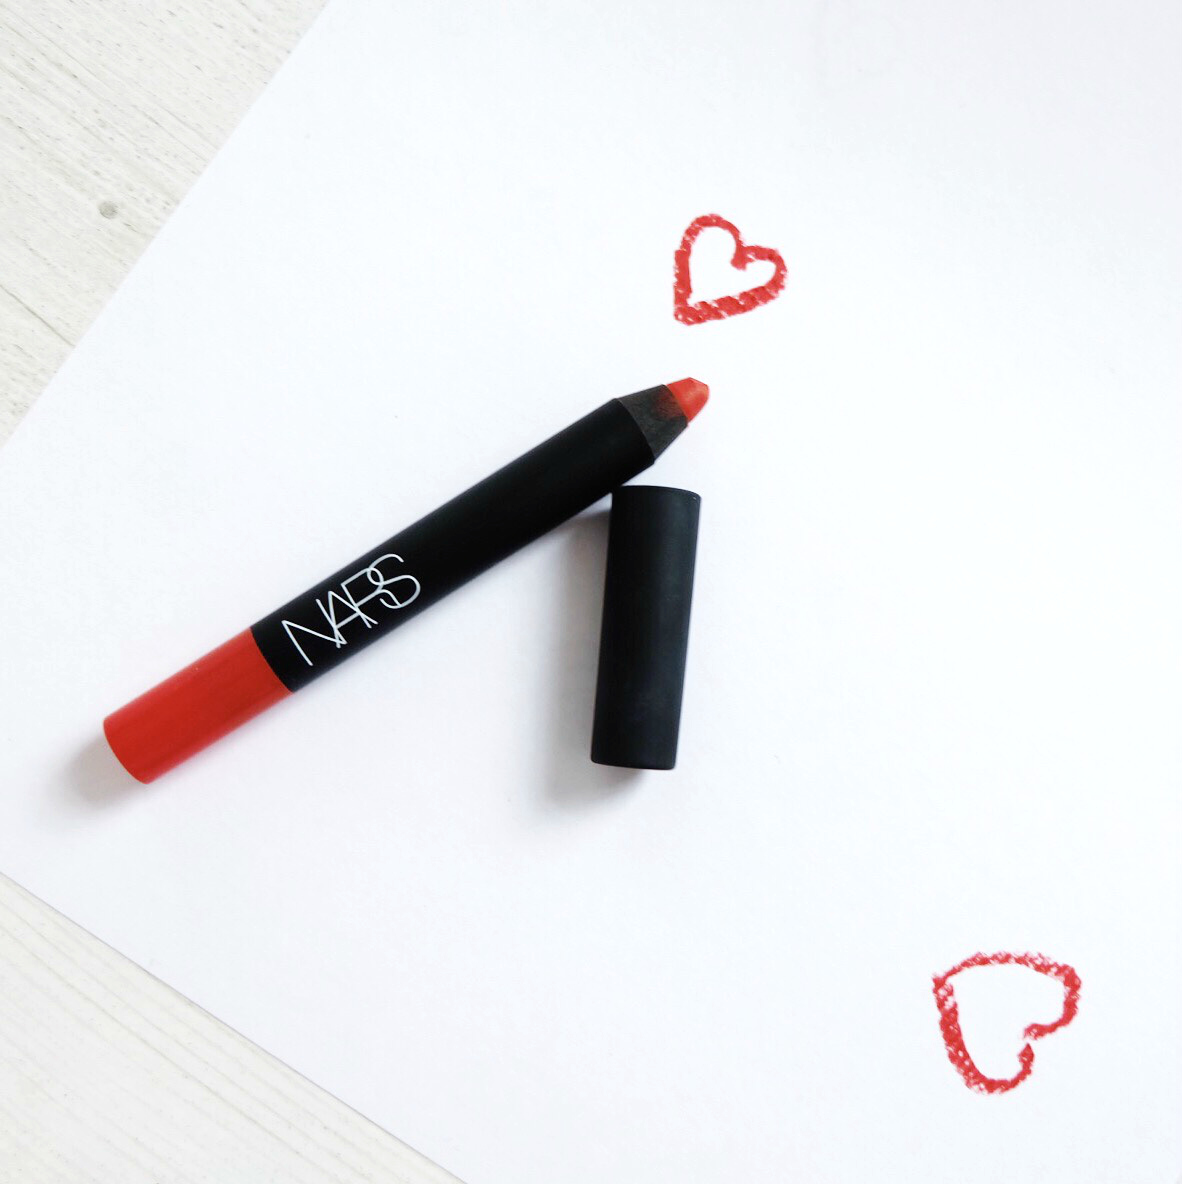 NARS Red Square Lip Pencil Review, NARS Red Square Lip Pencil swatch